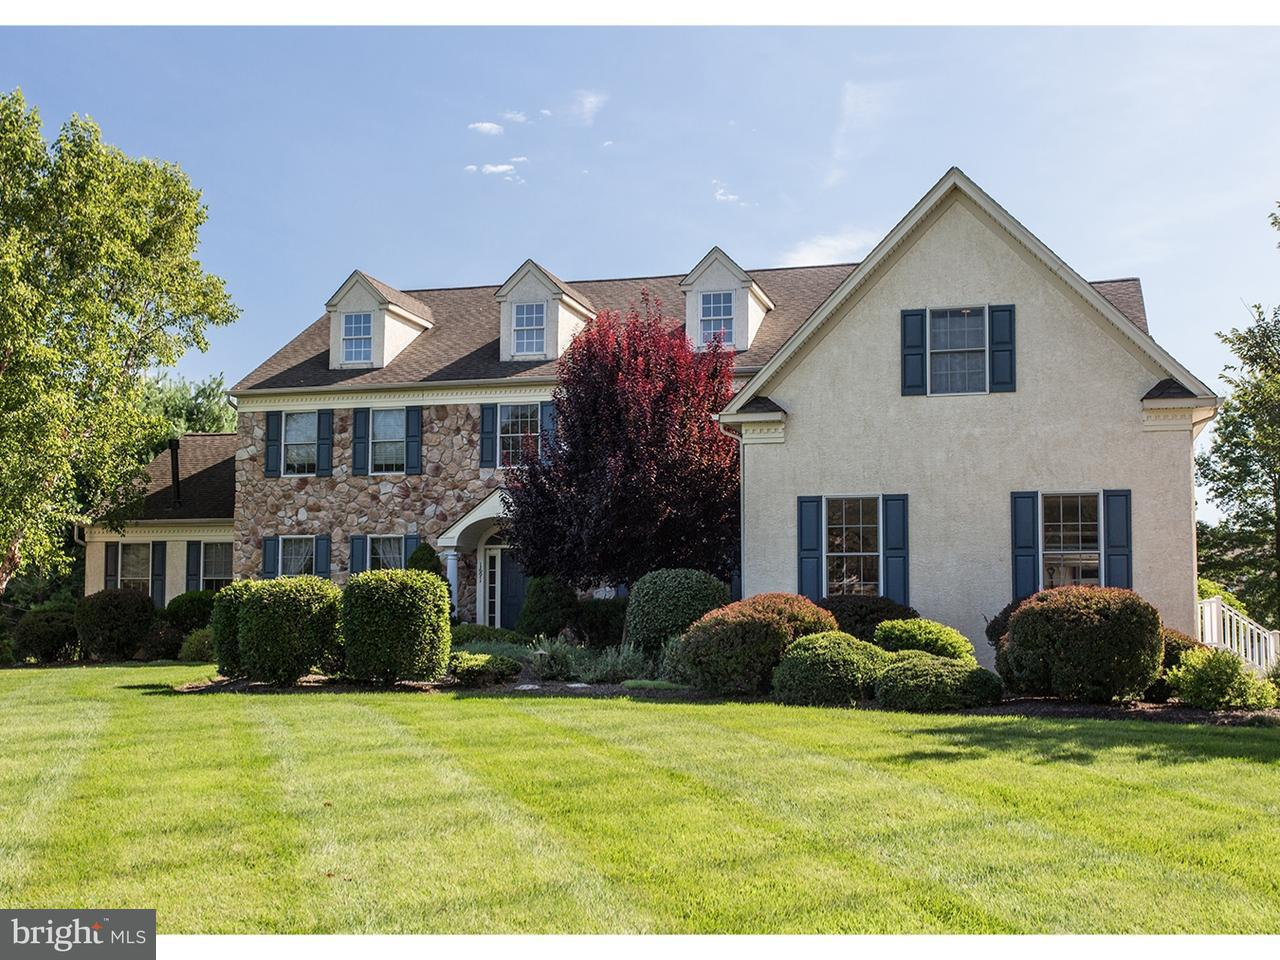 Single Family Home for Sale at 1691 MEETINGHOUSE Lane Yardley, Pennsylvania 19067 United States